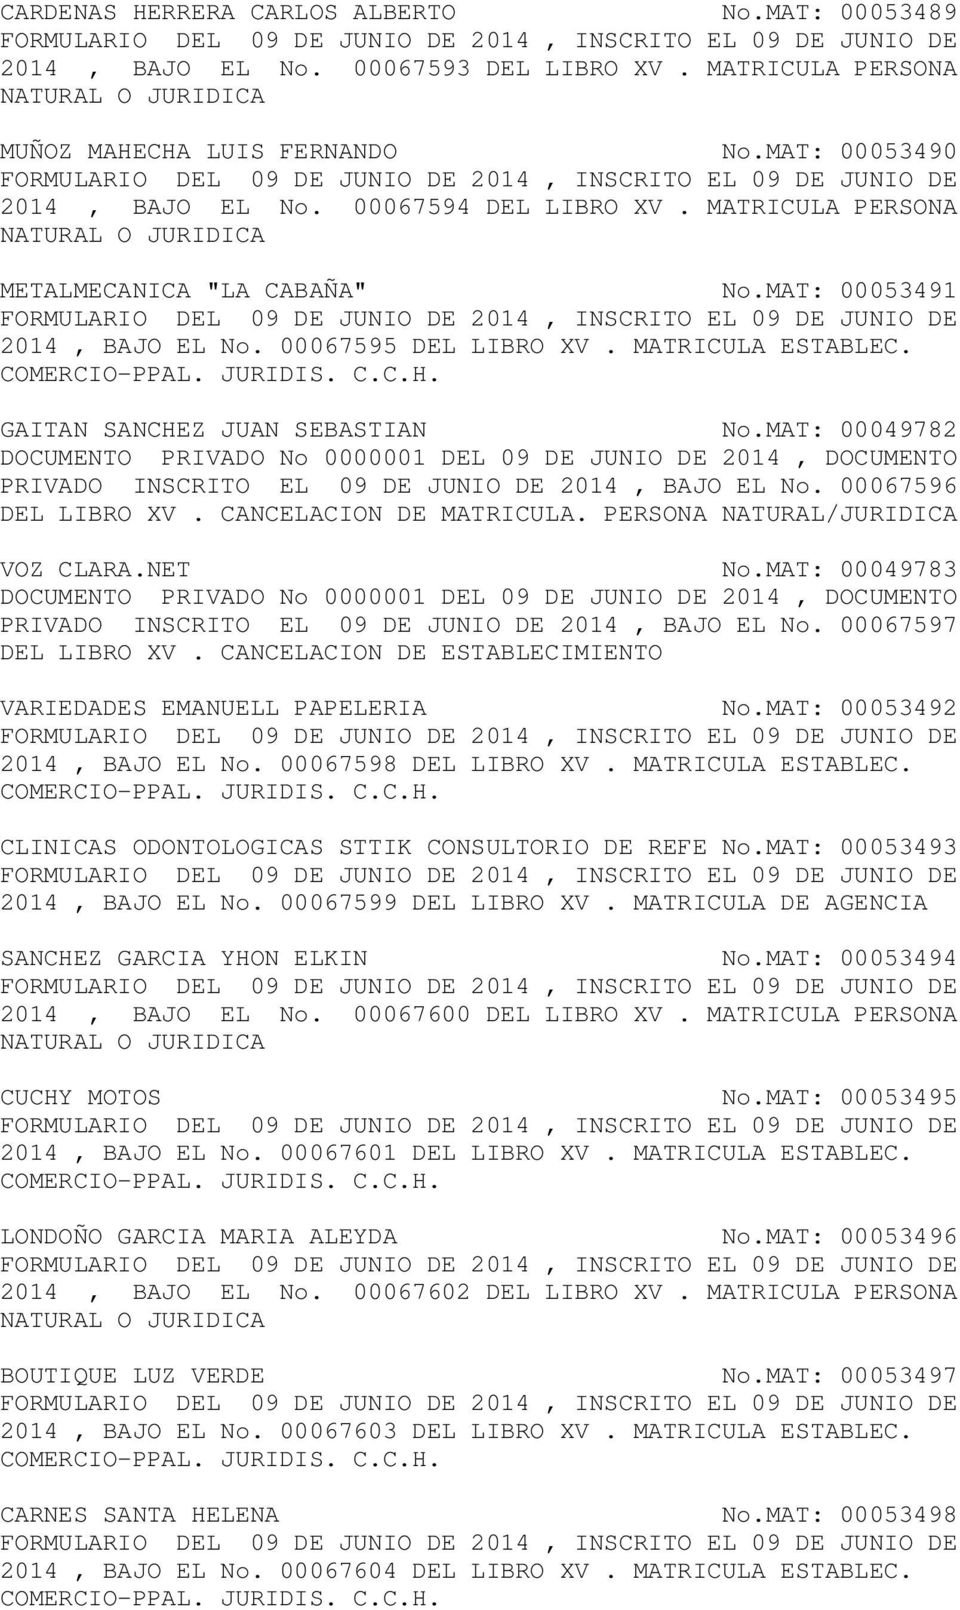 MAT: 00049782 DOCUMENTO PRIVADO No 0000001 DEL 09 DE JUNIO DE 2014, DOCUMENTO PRIVADO INSCRITO EL 09 DE JUNIO DE 2014, BAJO EL No. 00067596 VOZ CLARA.NET No.